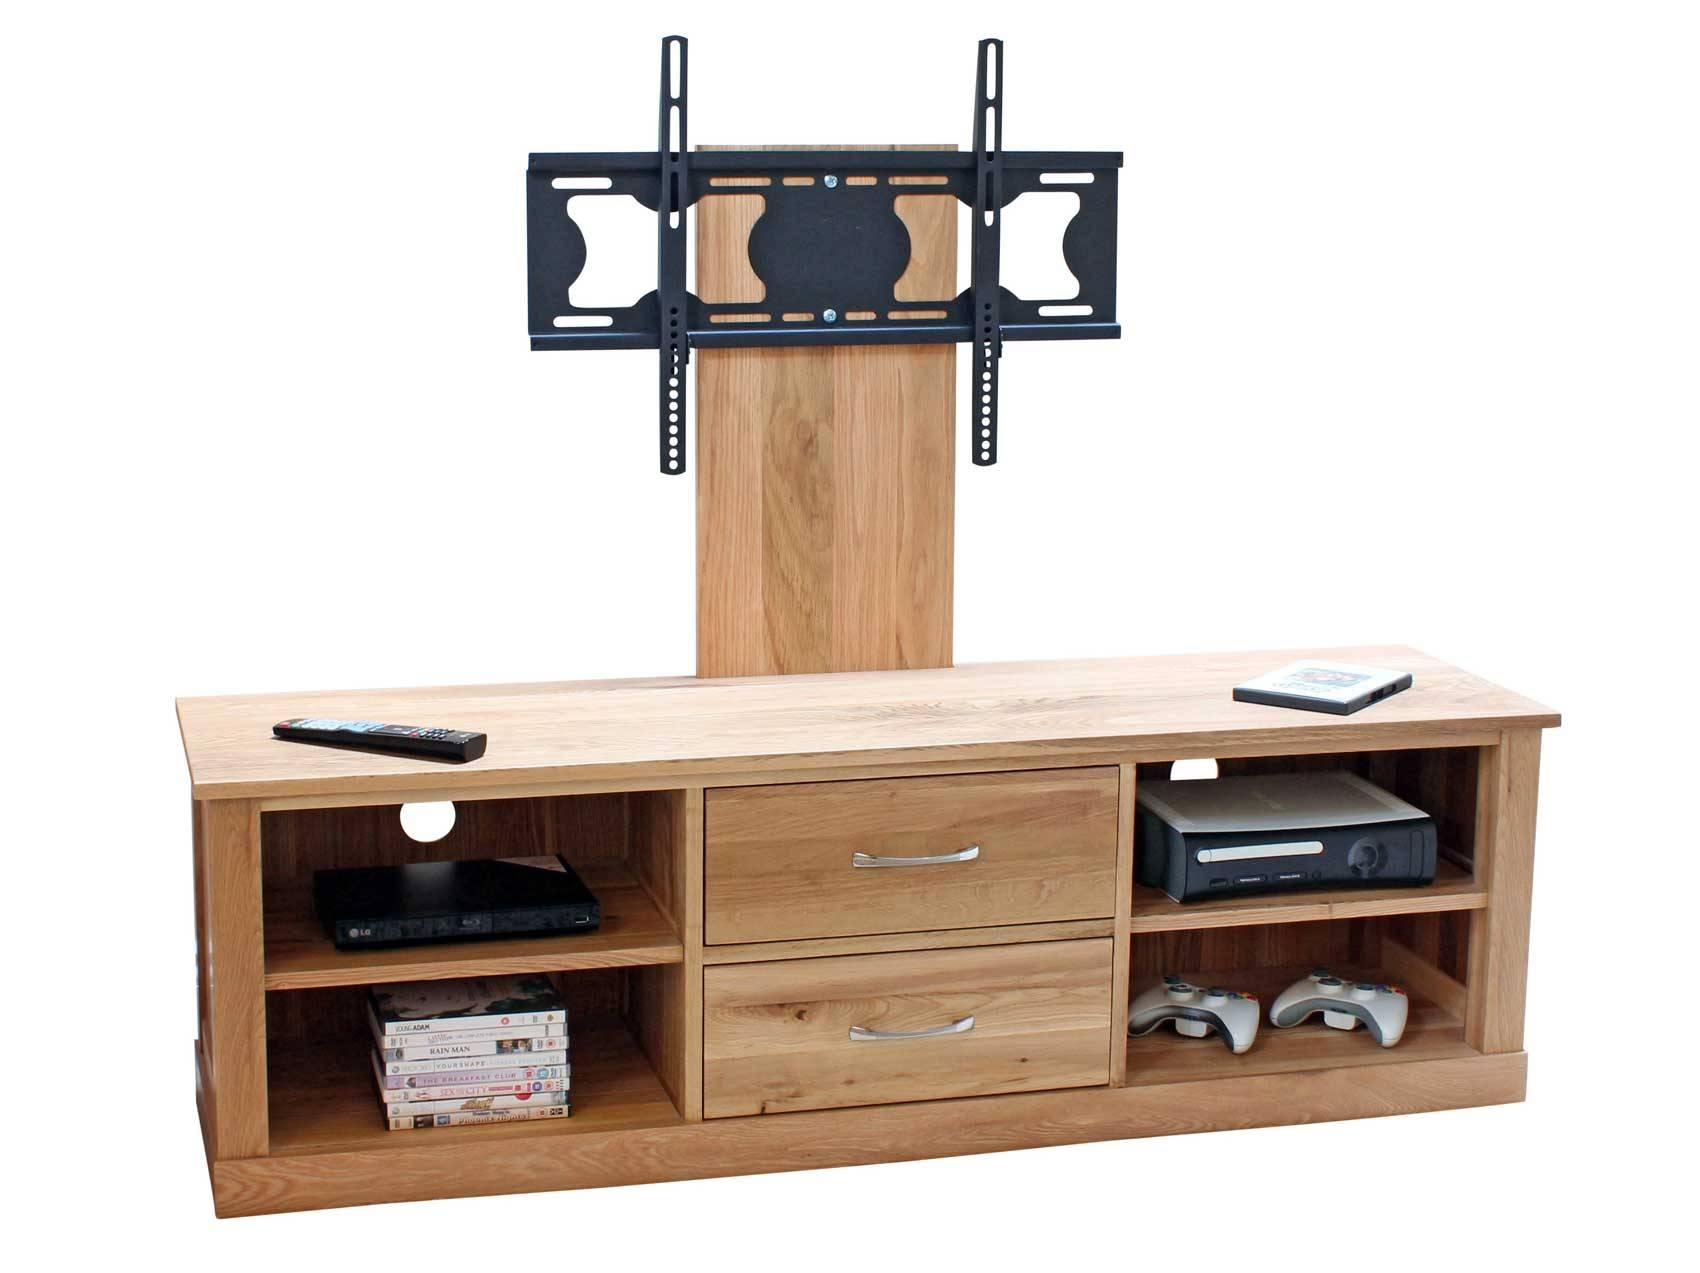 Oak Wooden Tv Stand With Mount For Flat Screen Of 14 Gorgeous throughout Oak Tv Cabinets For Flat Screens With Doors (Image 6 of 15)